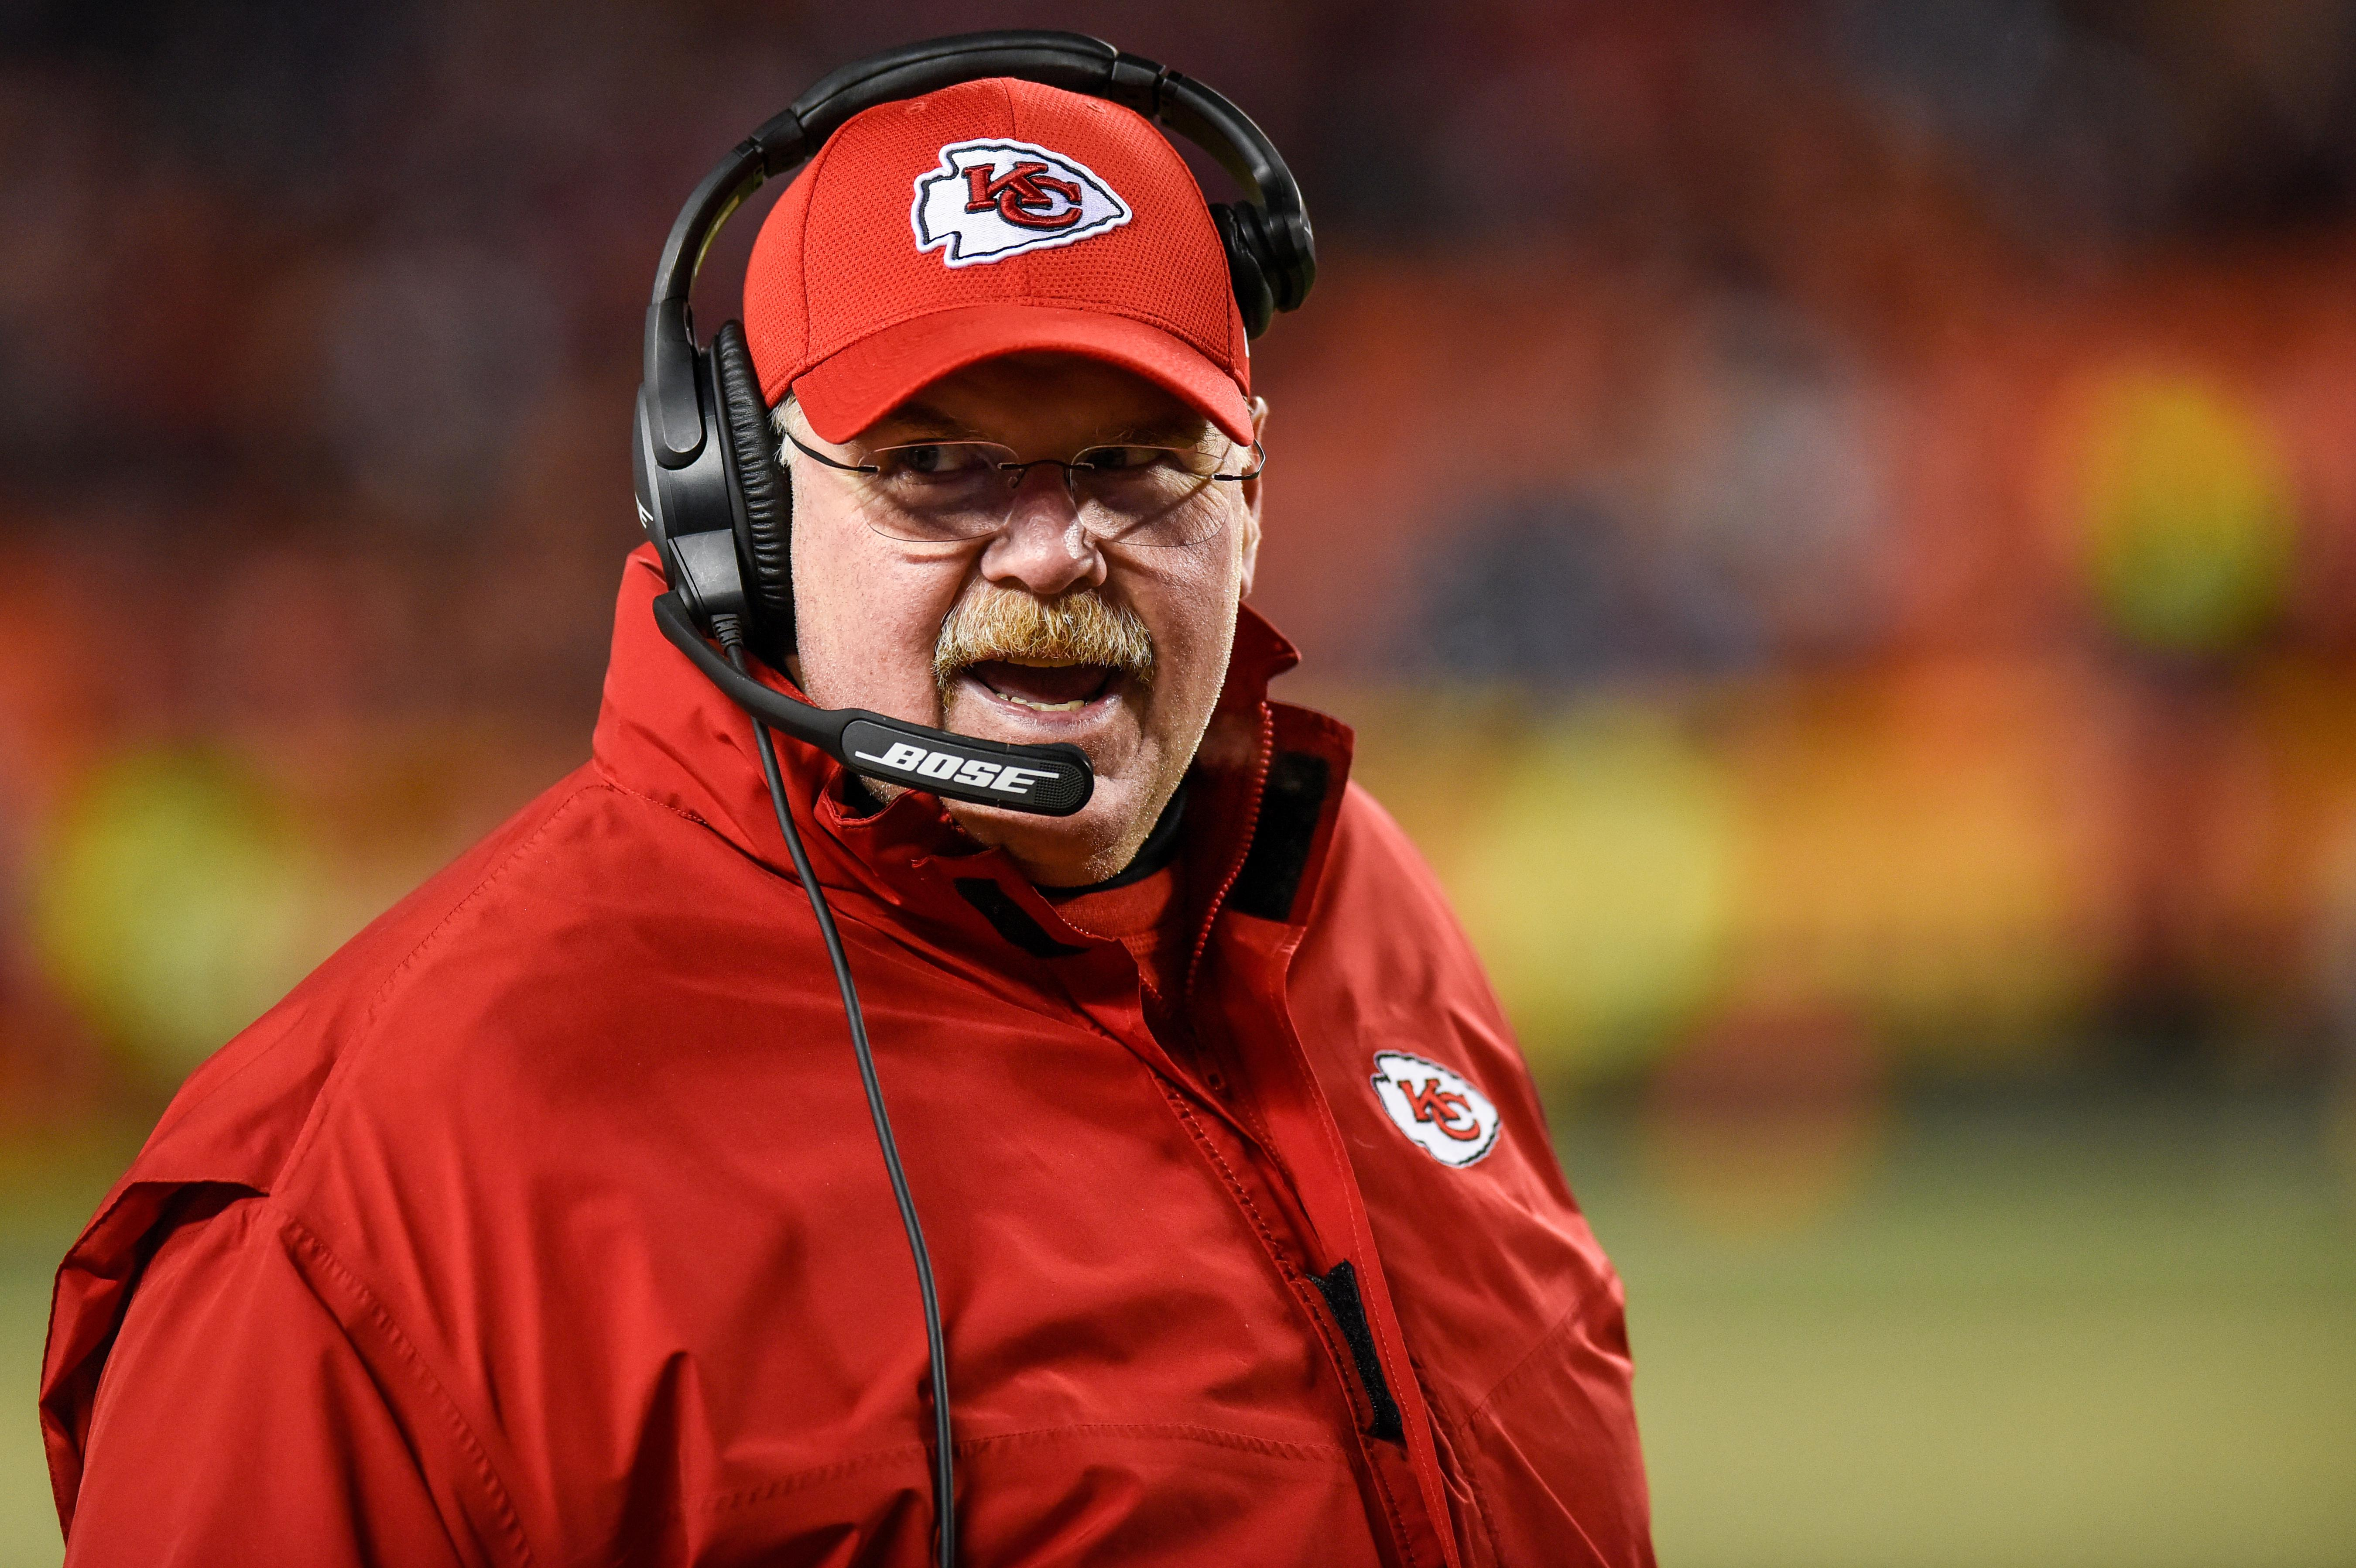 KANSAS CITY, MO - JANUARY 6: Head coach Andy Reid of the Kansas City Chiefs looks to the sidelines just before the Tennessee Titans run the last play of the AFC Wild Card Playoff Game at Arrowhead Stadium on January 6, 2018 in Kansas City, Missouri. (Photo by Jason Hanna/Getty Images)